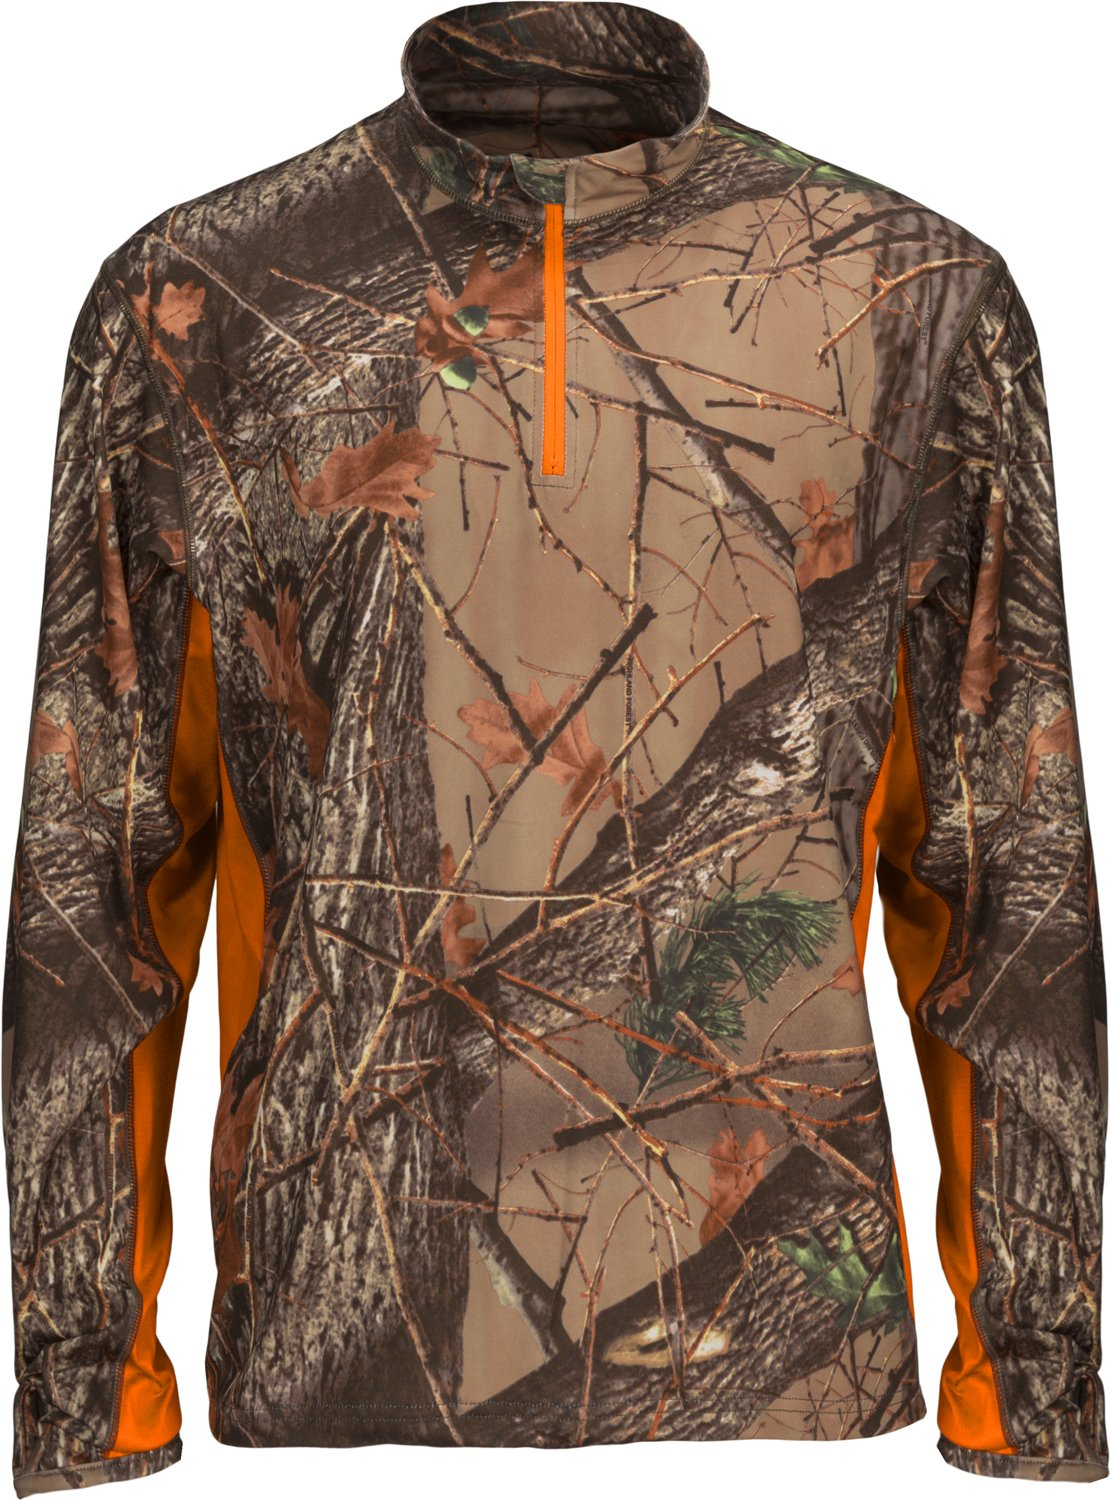 Trailcrest Camo Herren Impulse Active Performance 1/4 Zip Pullover Base Layer Long Sleeve Top